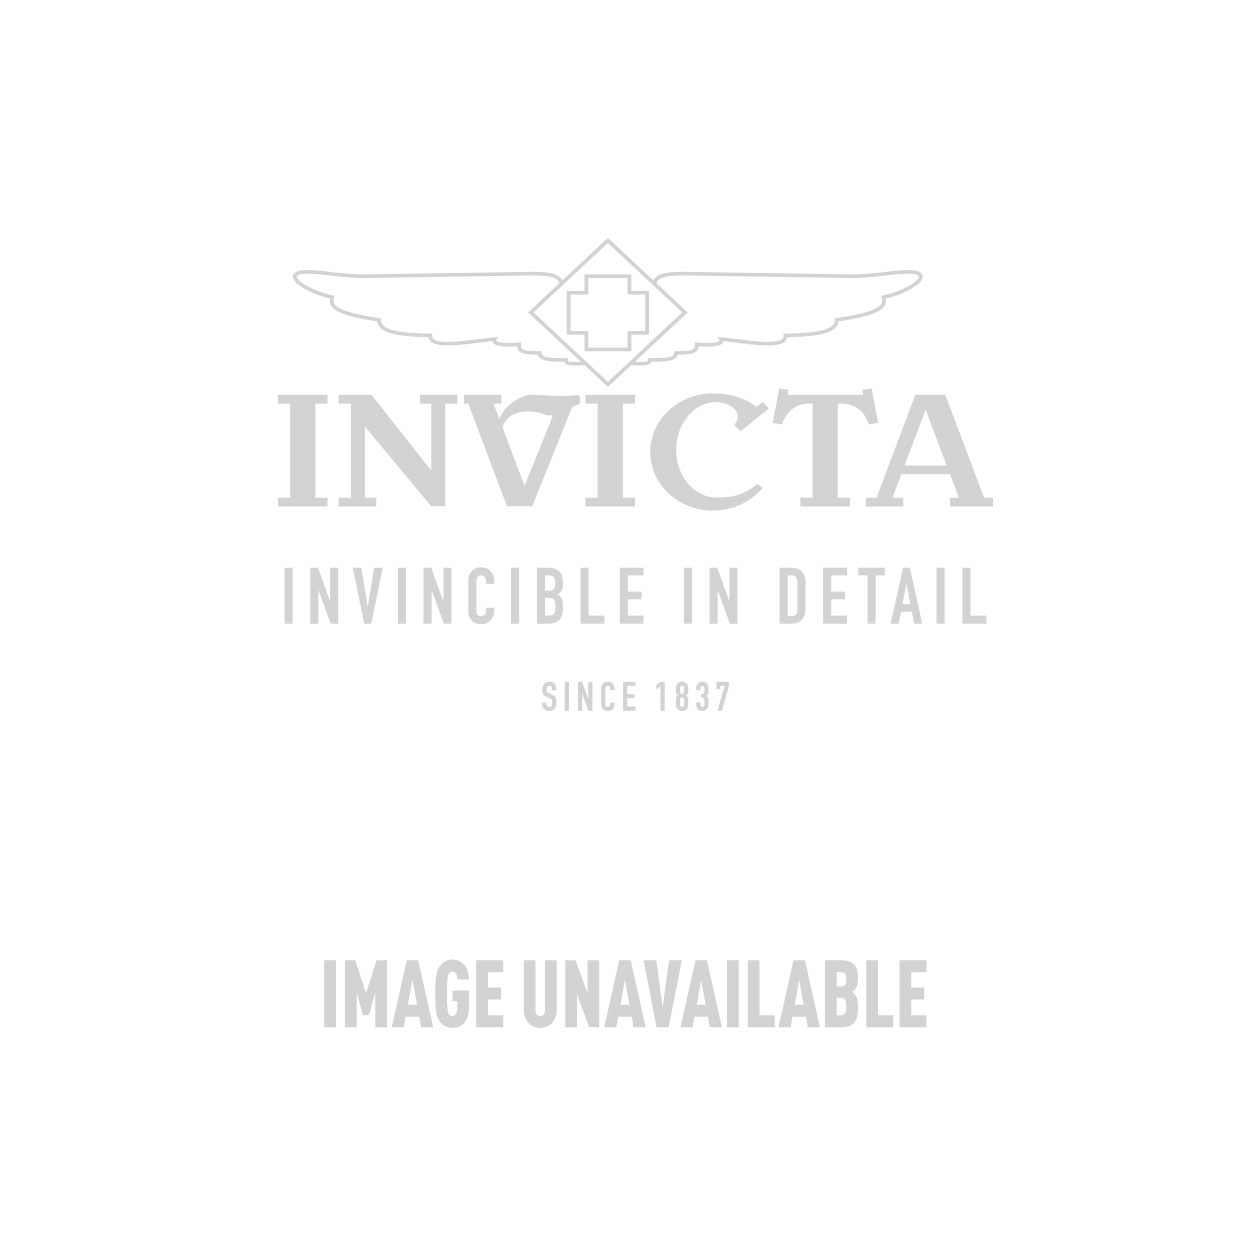 Invicta Vintage Swiss Made Quartz Watch - Black, Stainless Steel case with Black tone Leather band - Model 20257